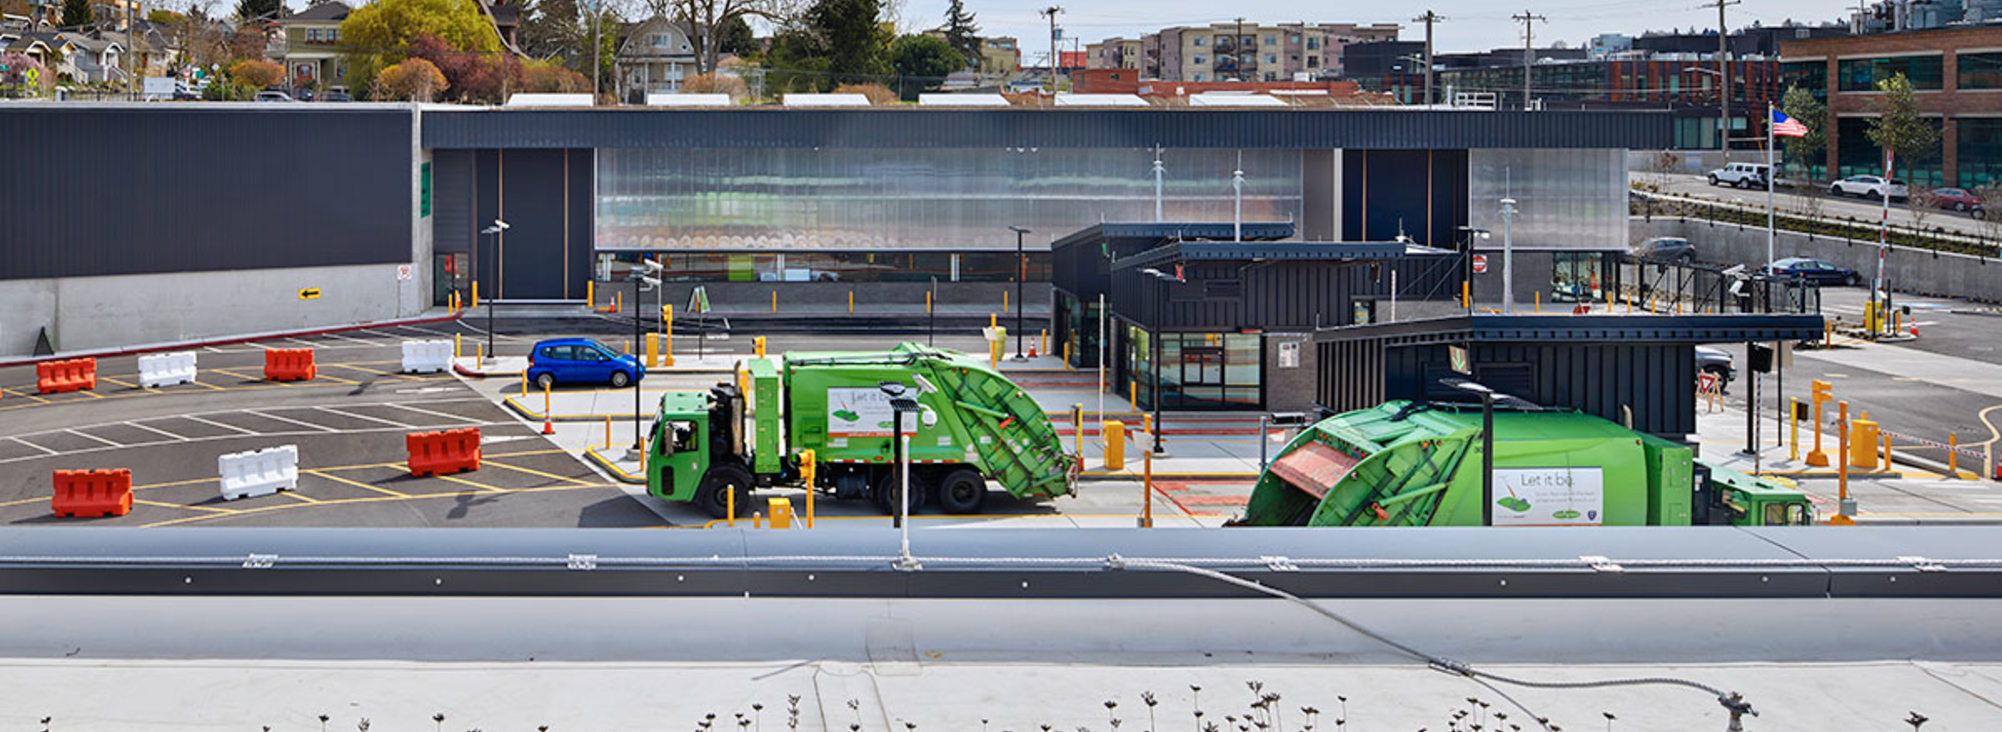 Garbage trucks dump their loads at the North Transfer Station in Seattle